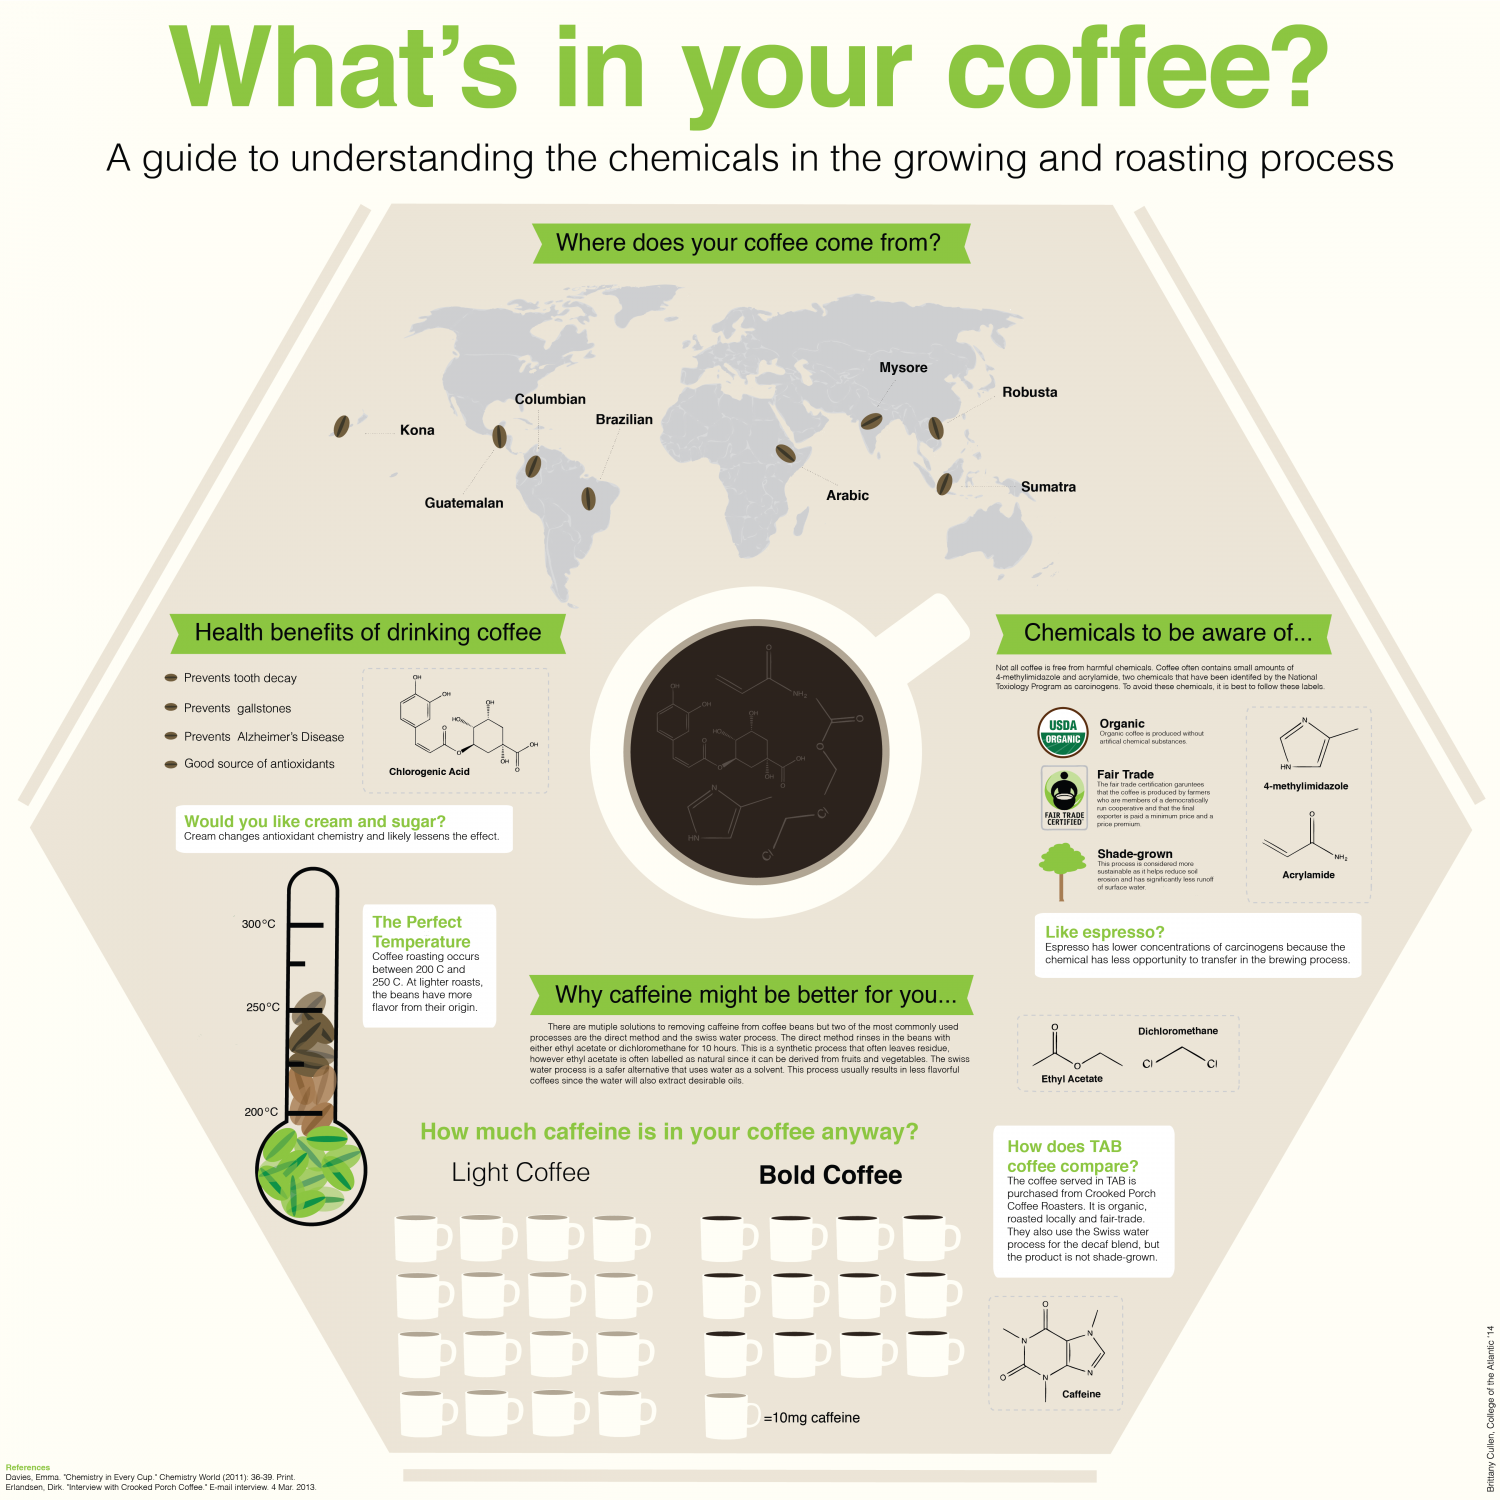 What's in your coffee? Infographic